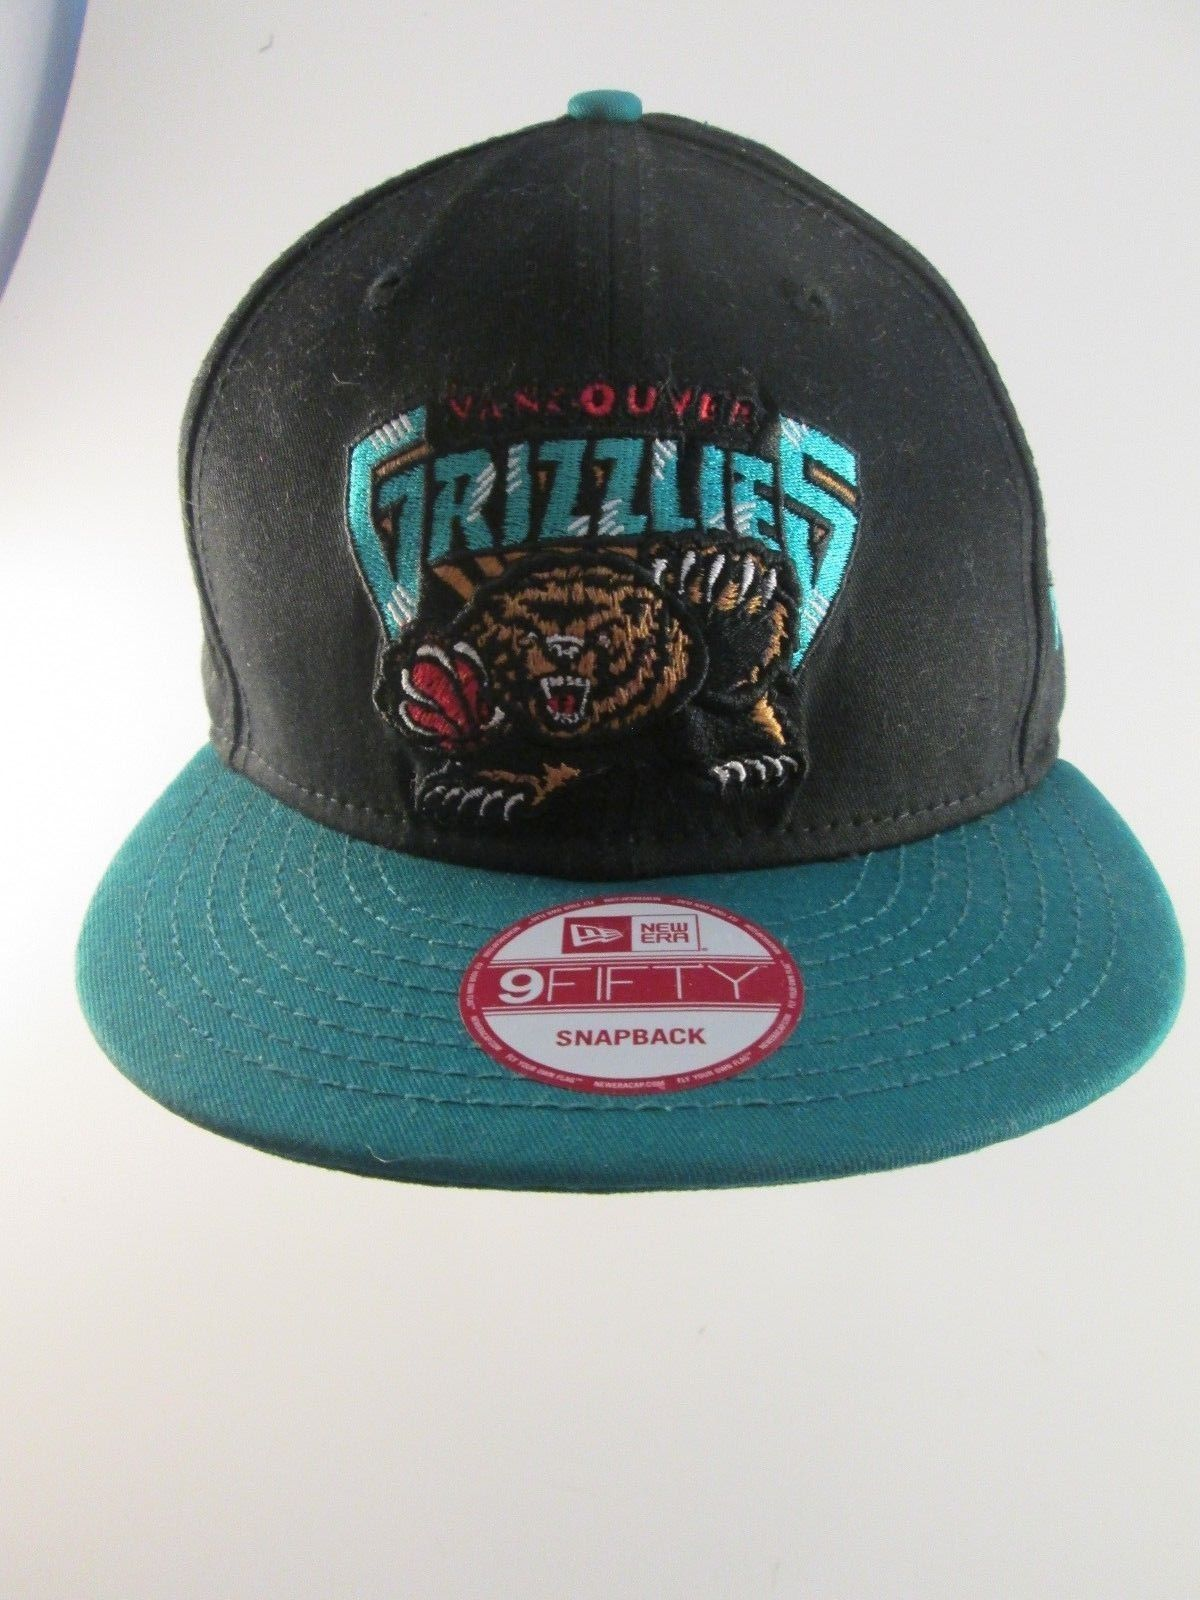 size 40 4df8b 22e17 ... 9fifty hardwood classics snapback hat cap nba retro a973c 6edfd new  style new era 20661568 vancouver grizzlies nba hwc youth out of line 9fifty  black ...